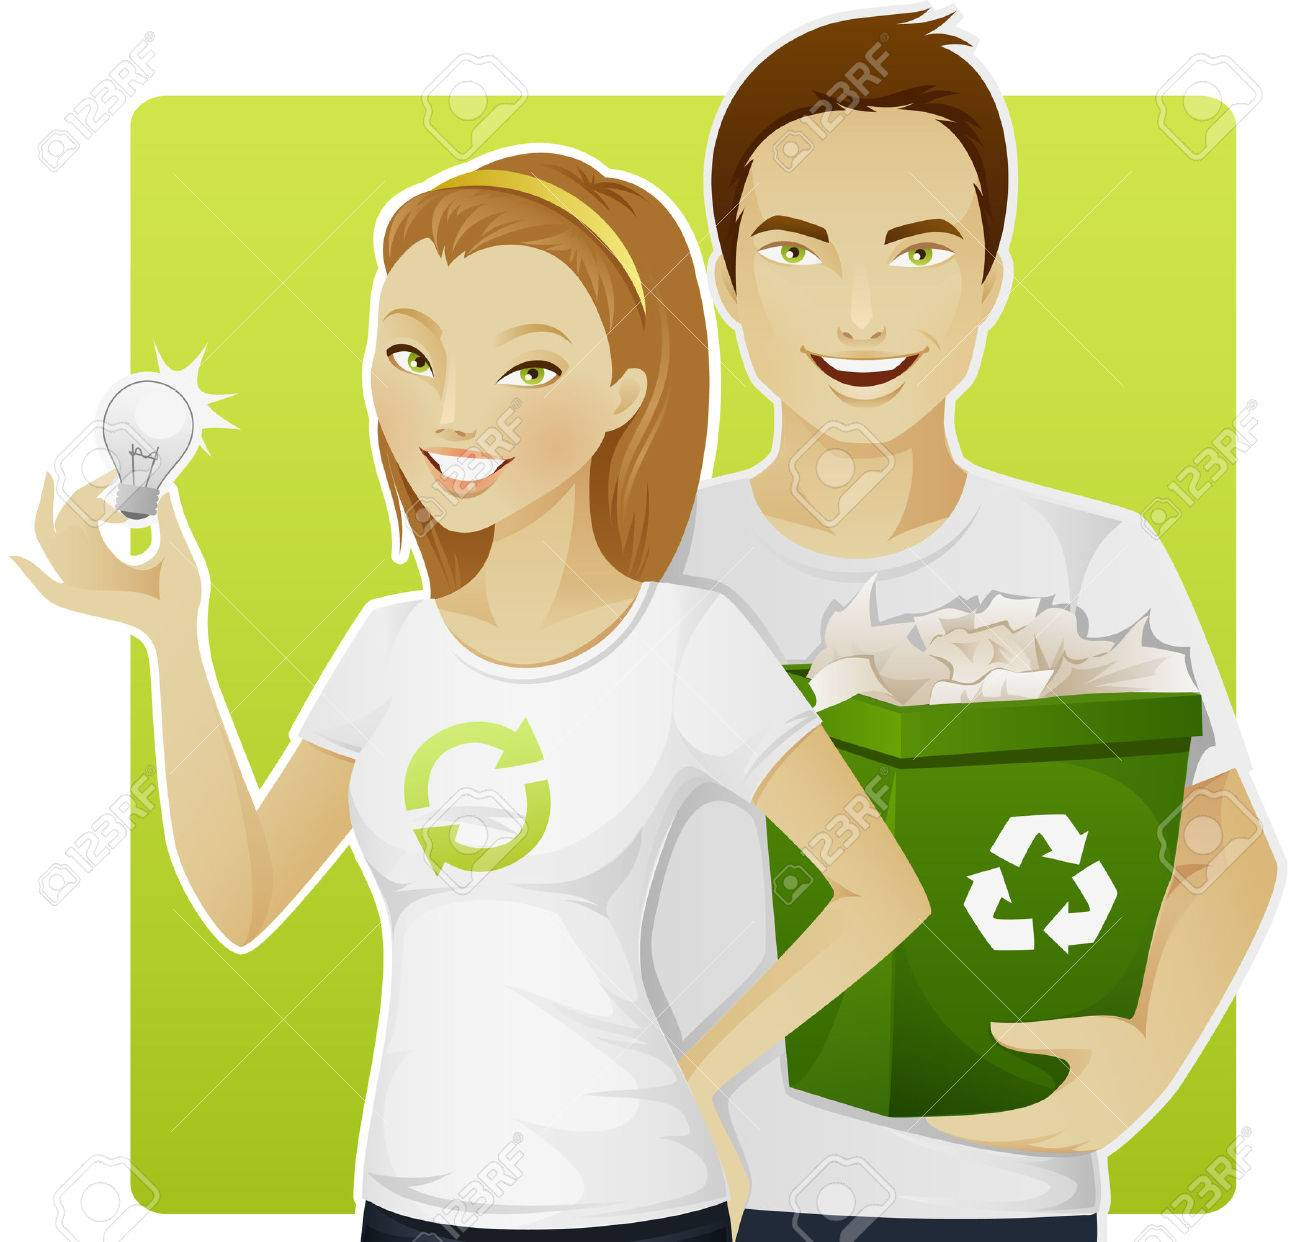 Eco-friendly people - 7471094